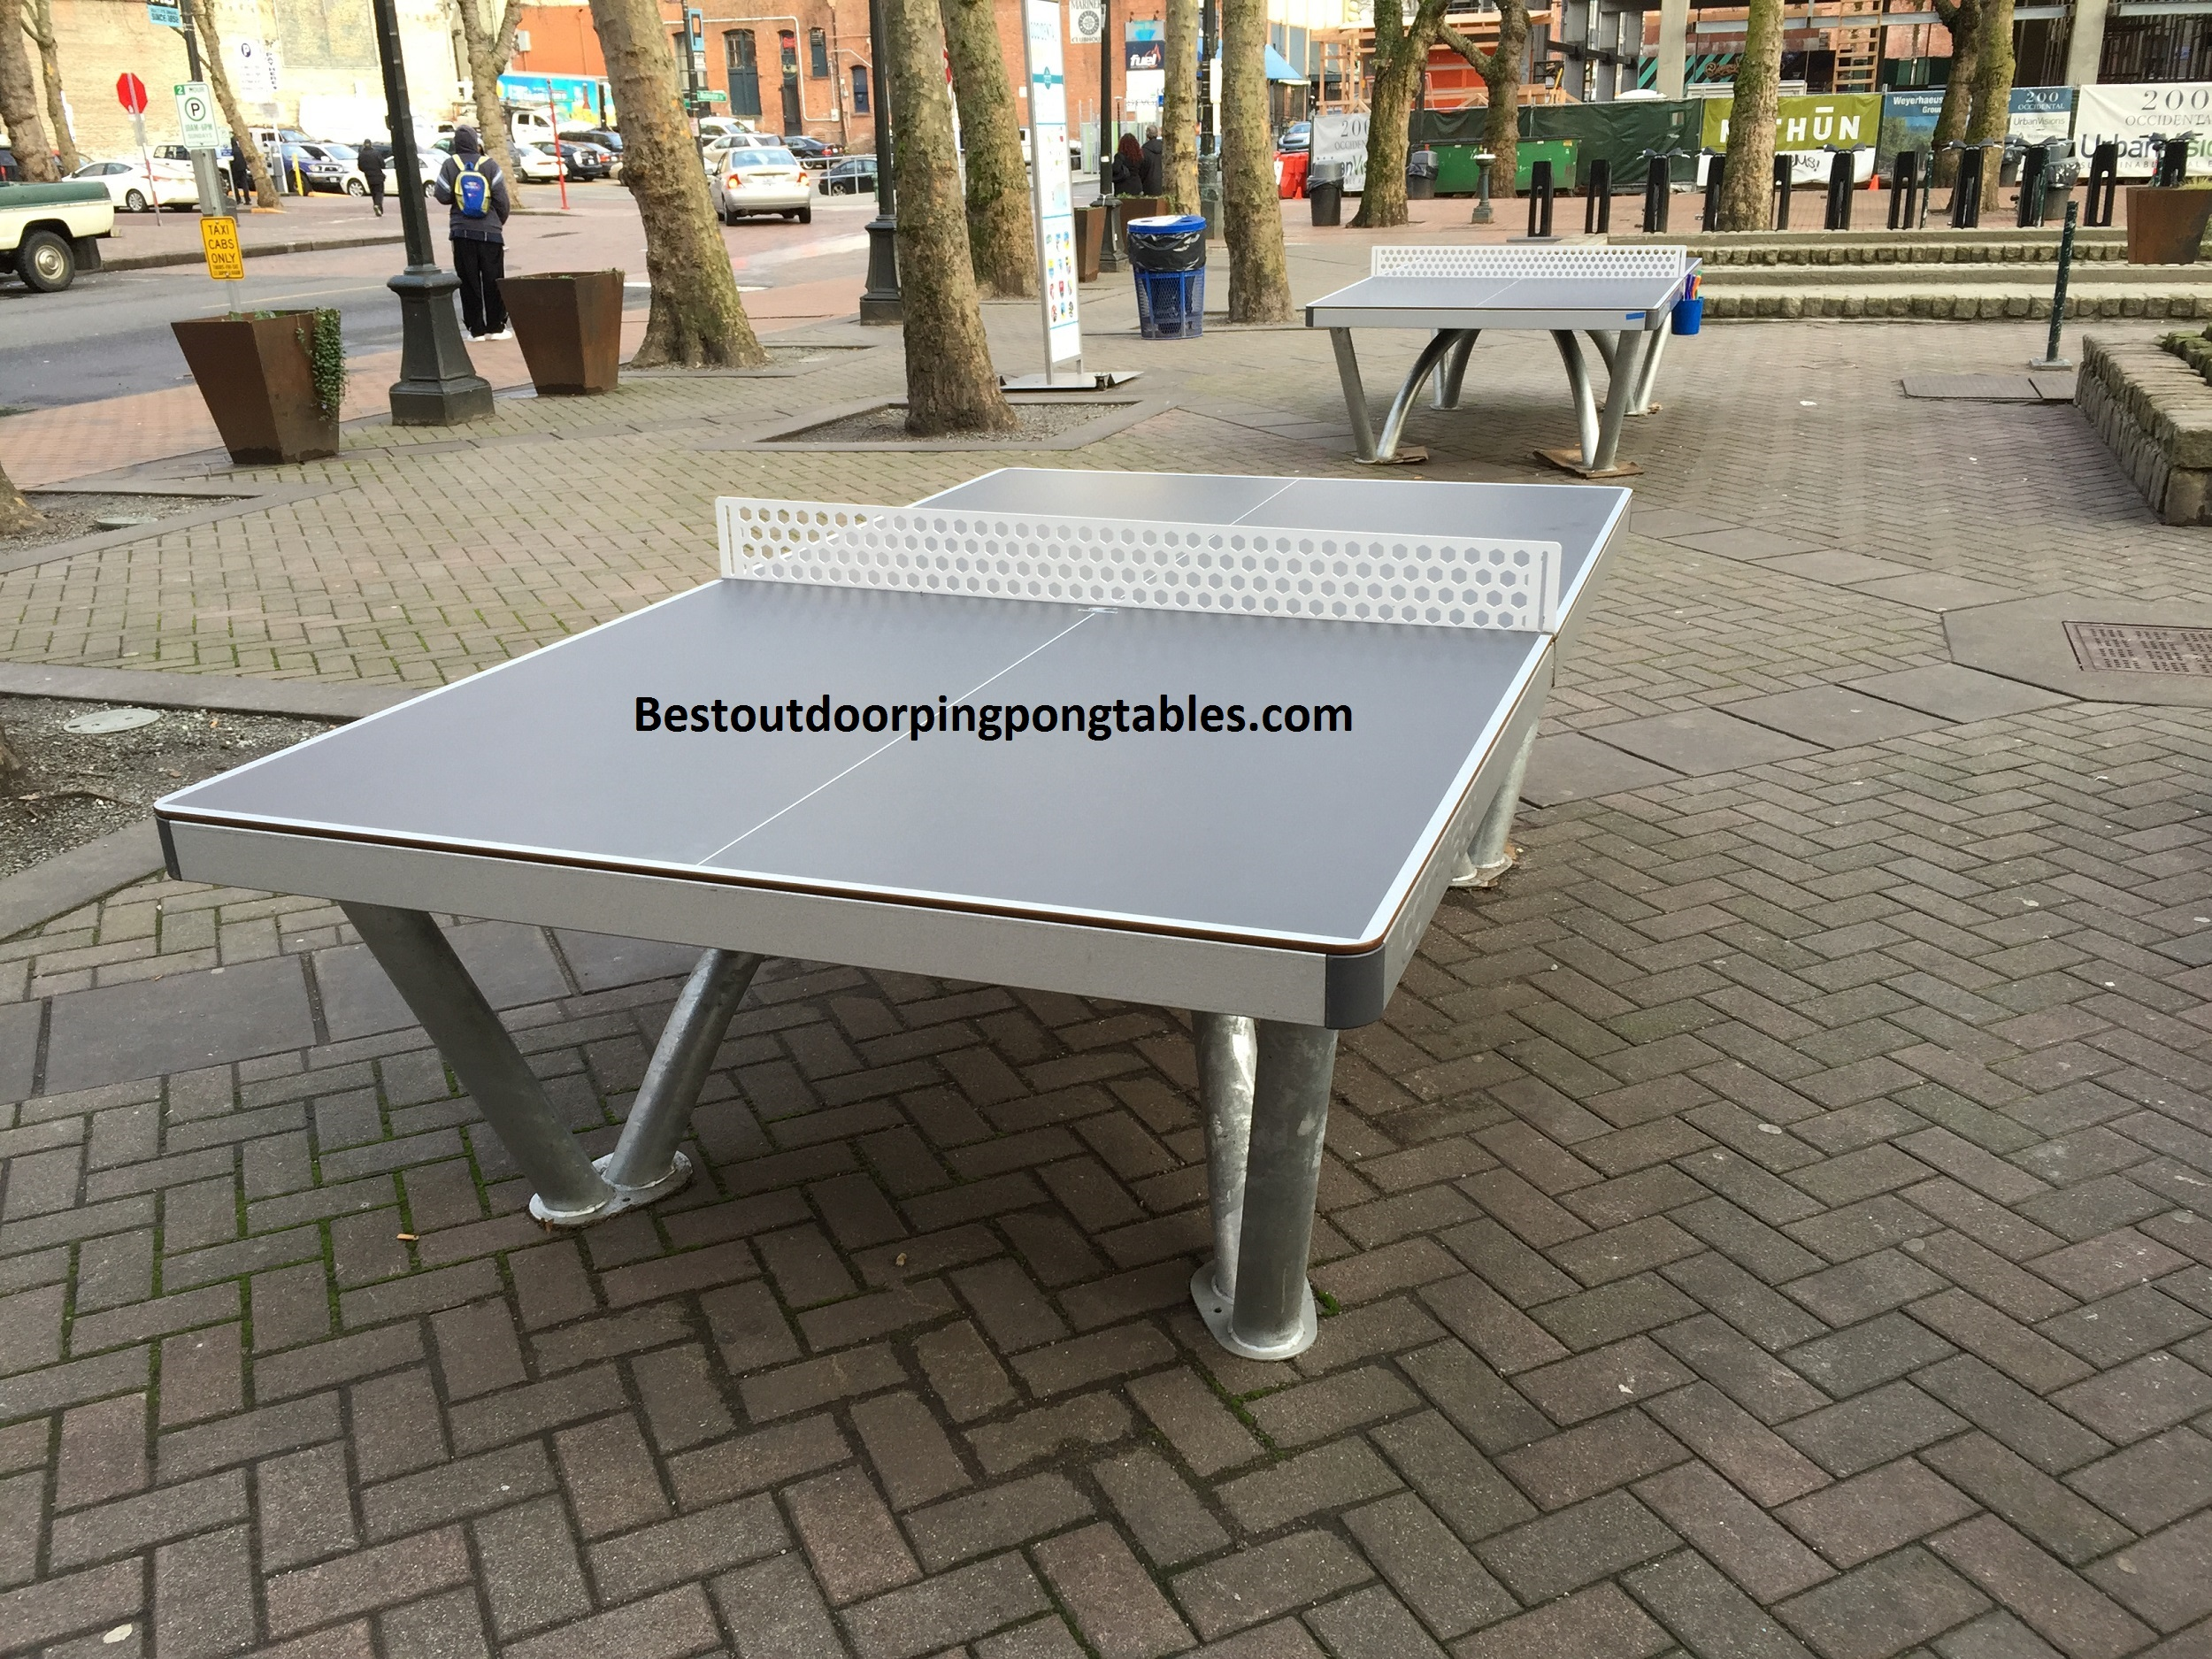 Cornilleau Park Outdoor Ping Pong Table